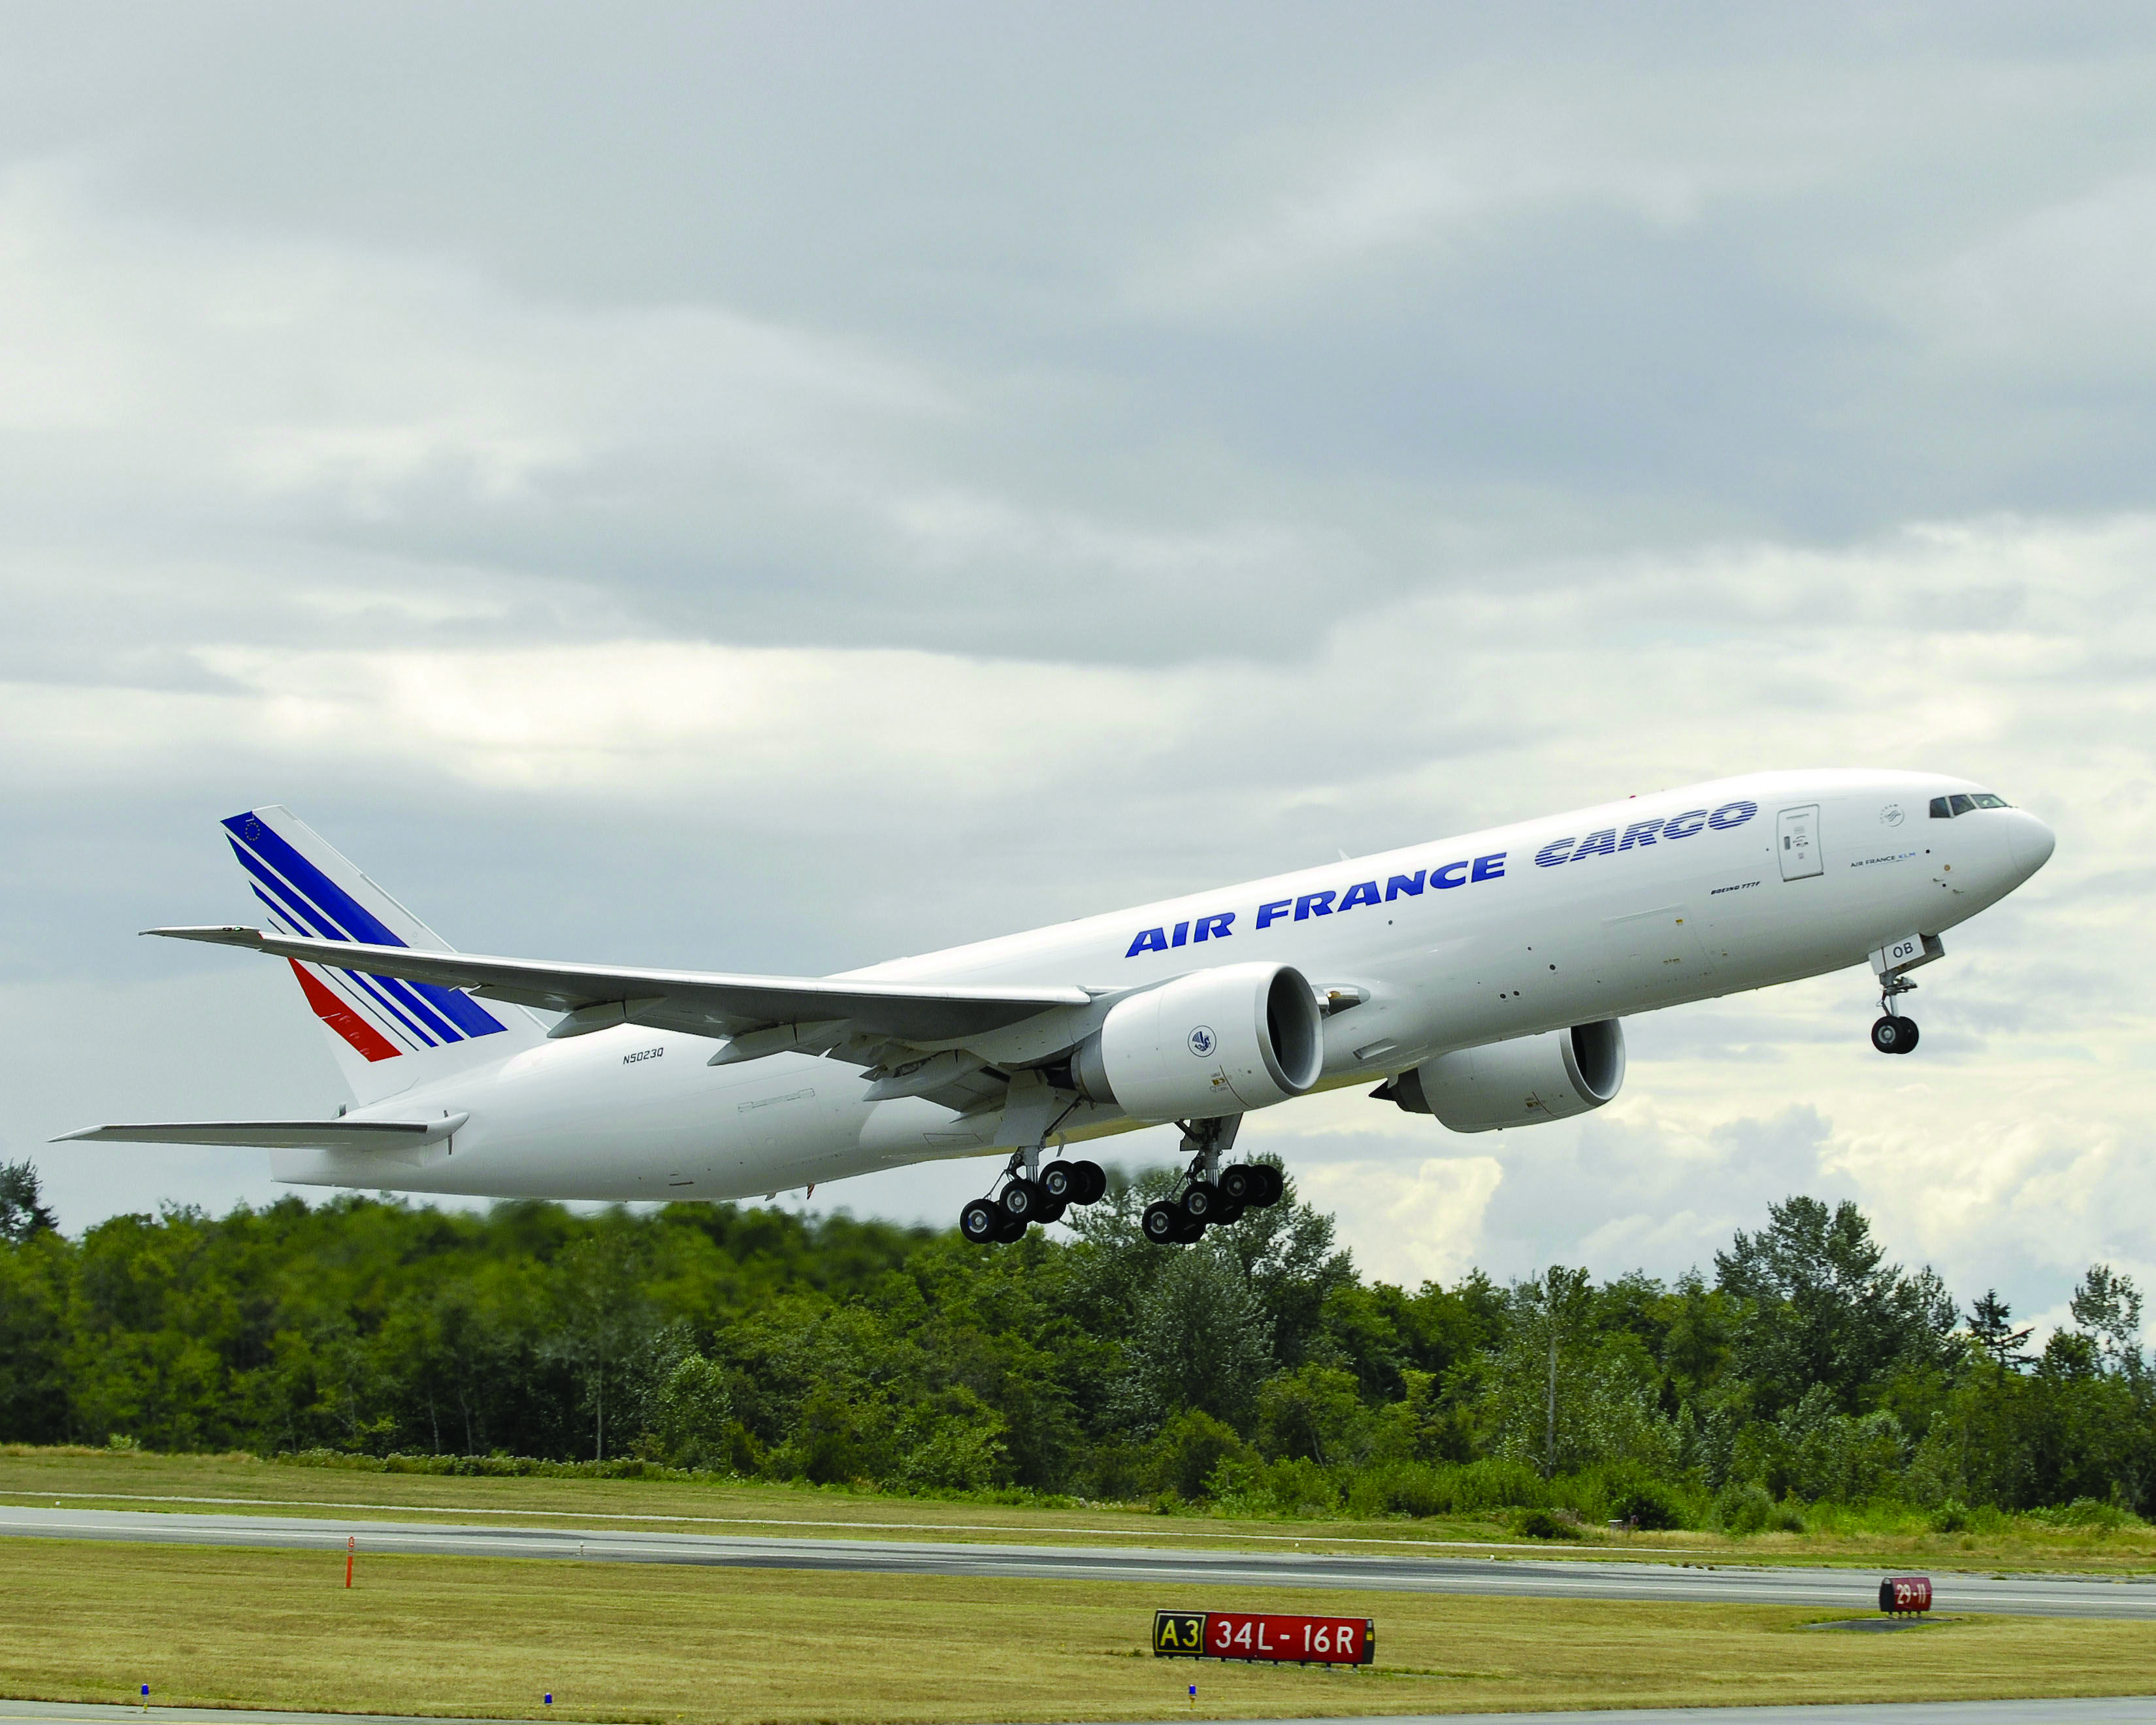 Air France Cargo B777 freighter